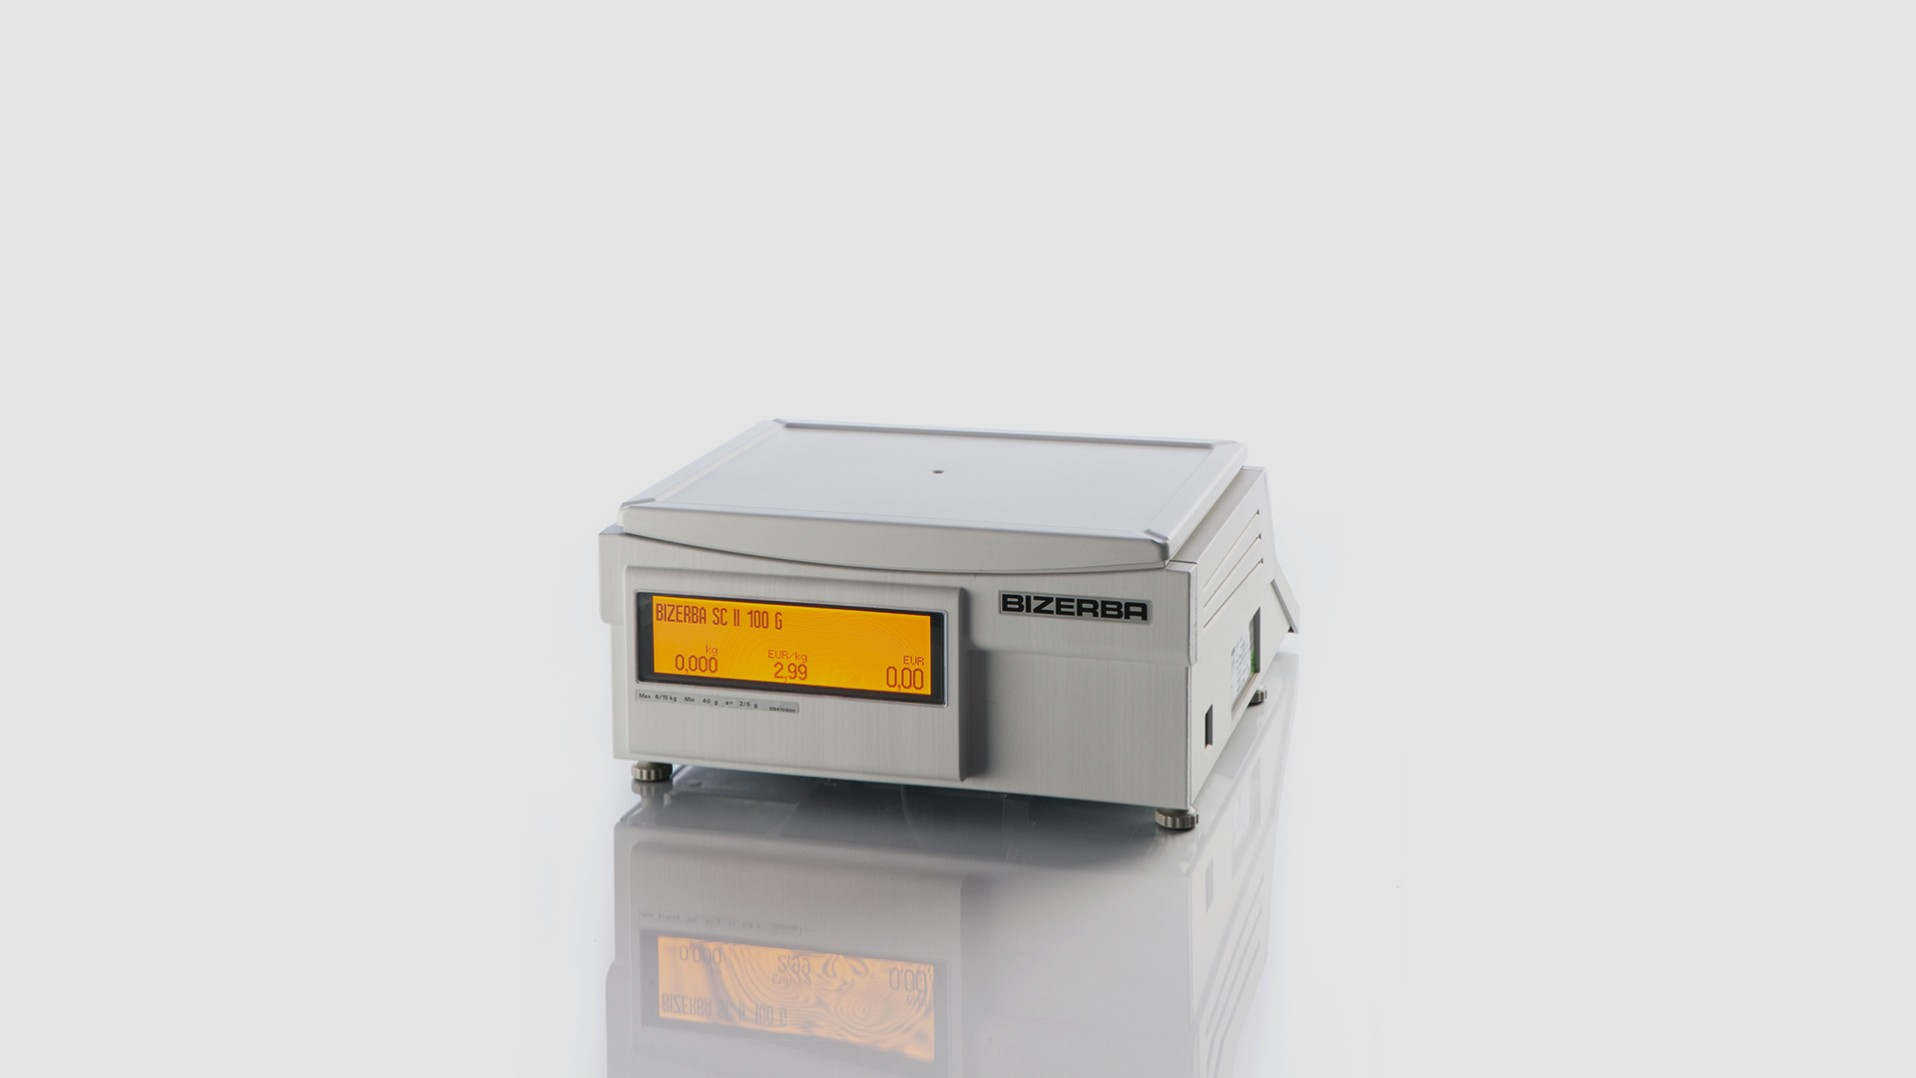 Counter top retail scale SC II 100 rear view